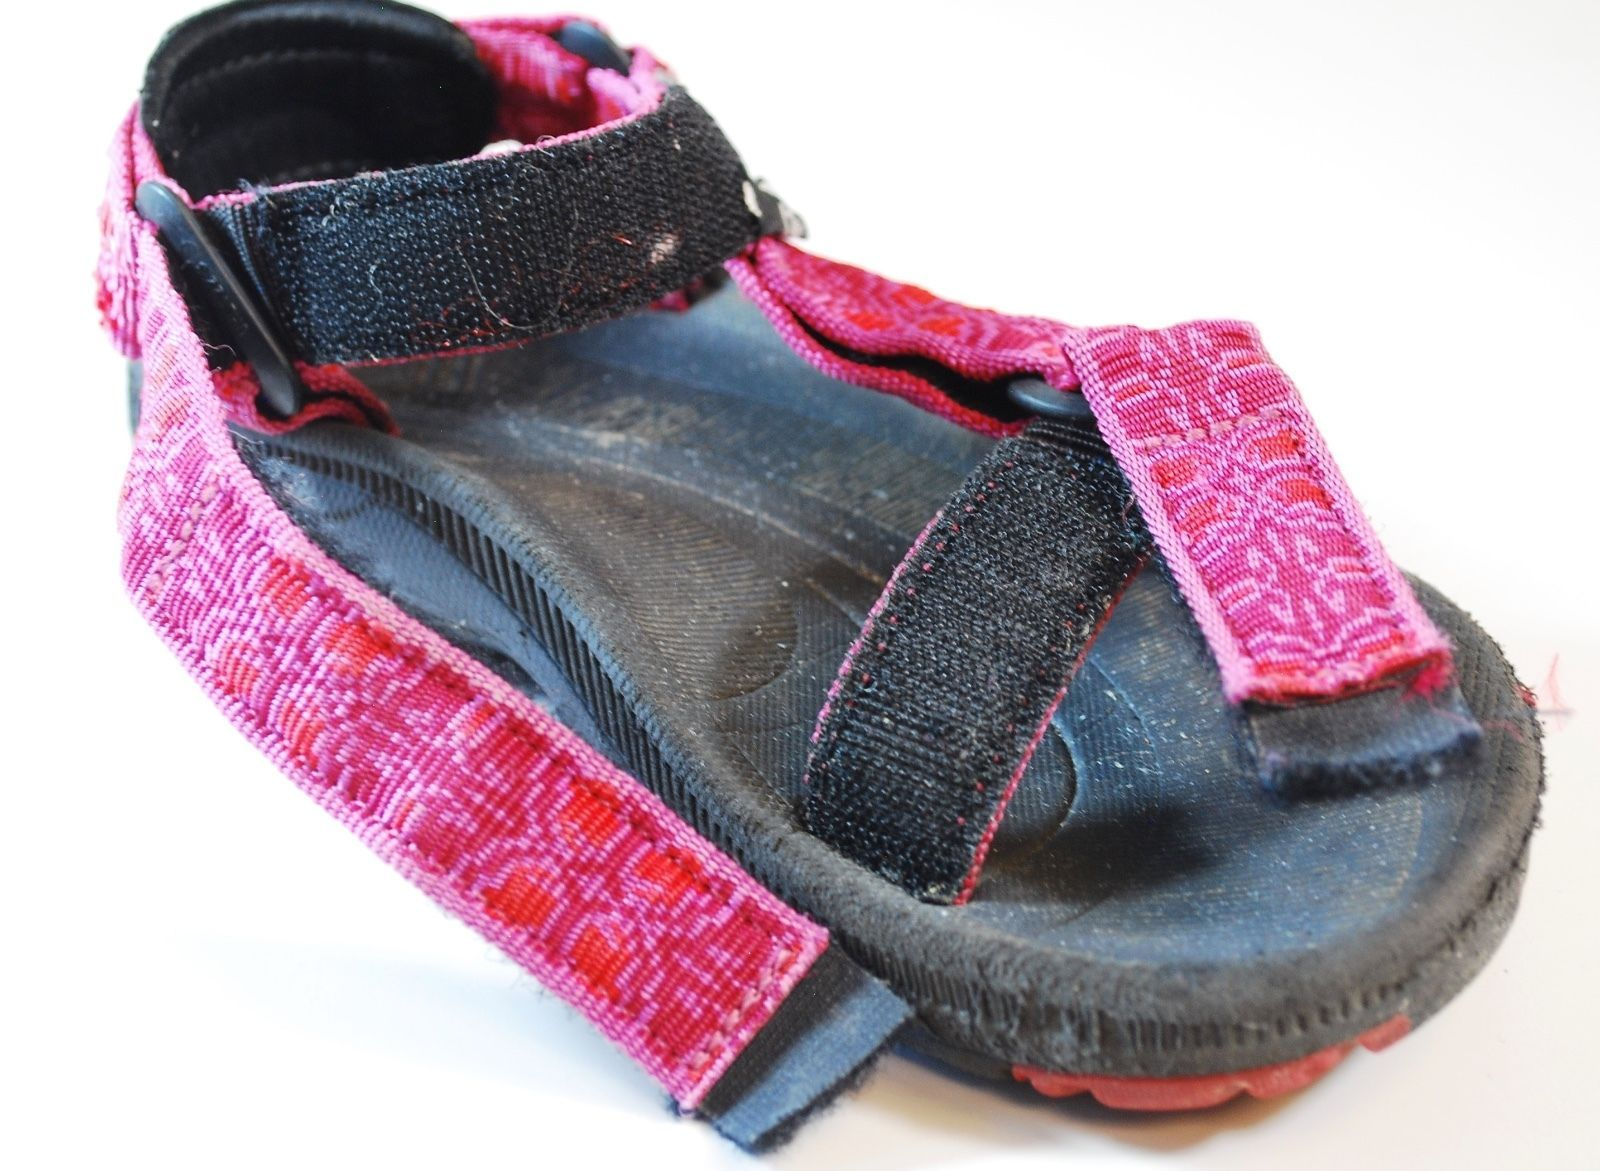 545ad45f1e25 TEVA Sport Strap Sandals - Red Pink - Girls and 50 similar items